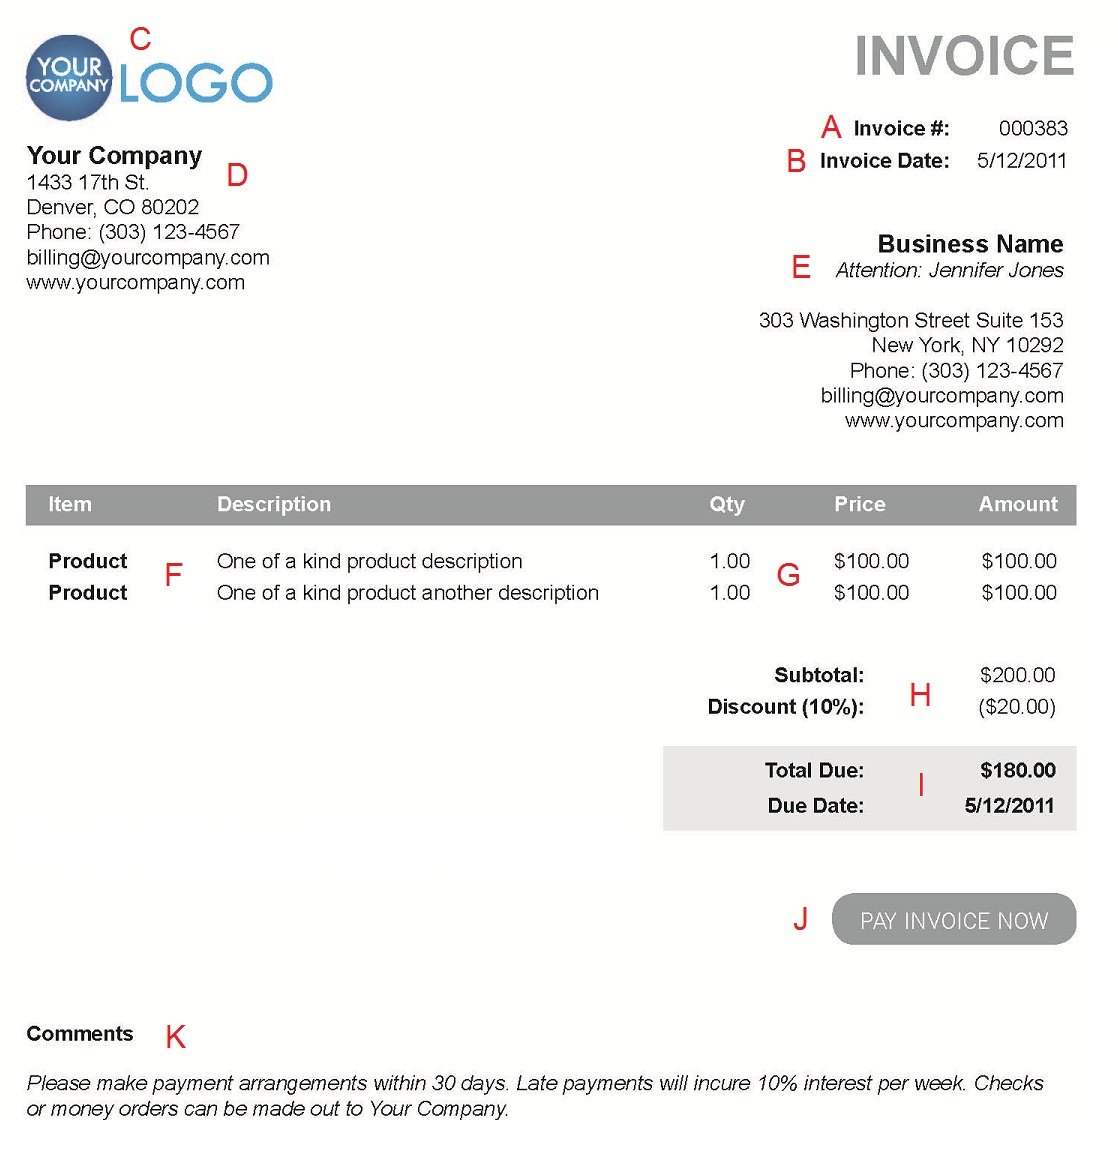 Coachoutletonlineplusus  Inspiring The  Different Sections Of An Electronic Payment Invoice With Handsome A  With Attractive Neat Receipt Reviews Also Receipt For Rent Paid In Addition App That Scans Receipts And Costco Receipts Online As Well As Beef Stew Receipt Additionally Income Tax Receipt From Paysimplecom With Coachoutletonlineplusus  Handsome The  Different Sections Of An Electronic Payment Invoice With Attractive A  And Inspiring Neat Receipt Reviews Also Receipt For Rent Paid In Addition App That Scans Receipts From Paysimplecom